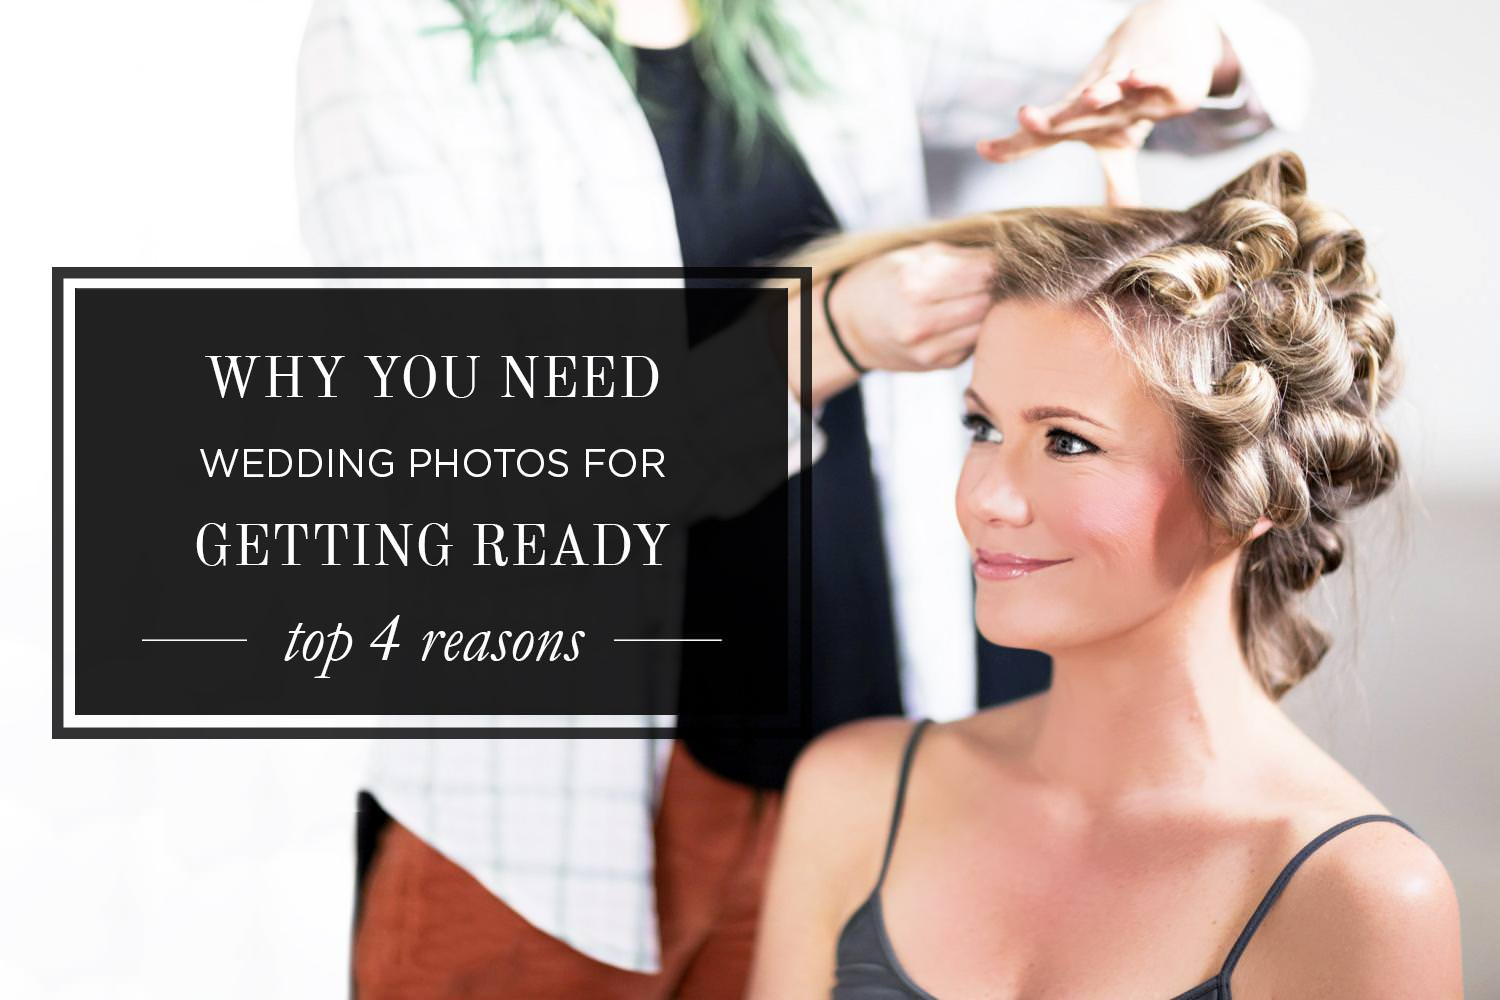 Do I Need Bridesmaids 4 Reasons To Have A Wedding Without: 4 Important Reasons Why You Need Getting Ready Photos